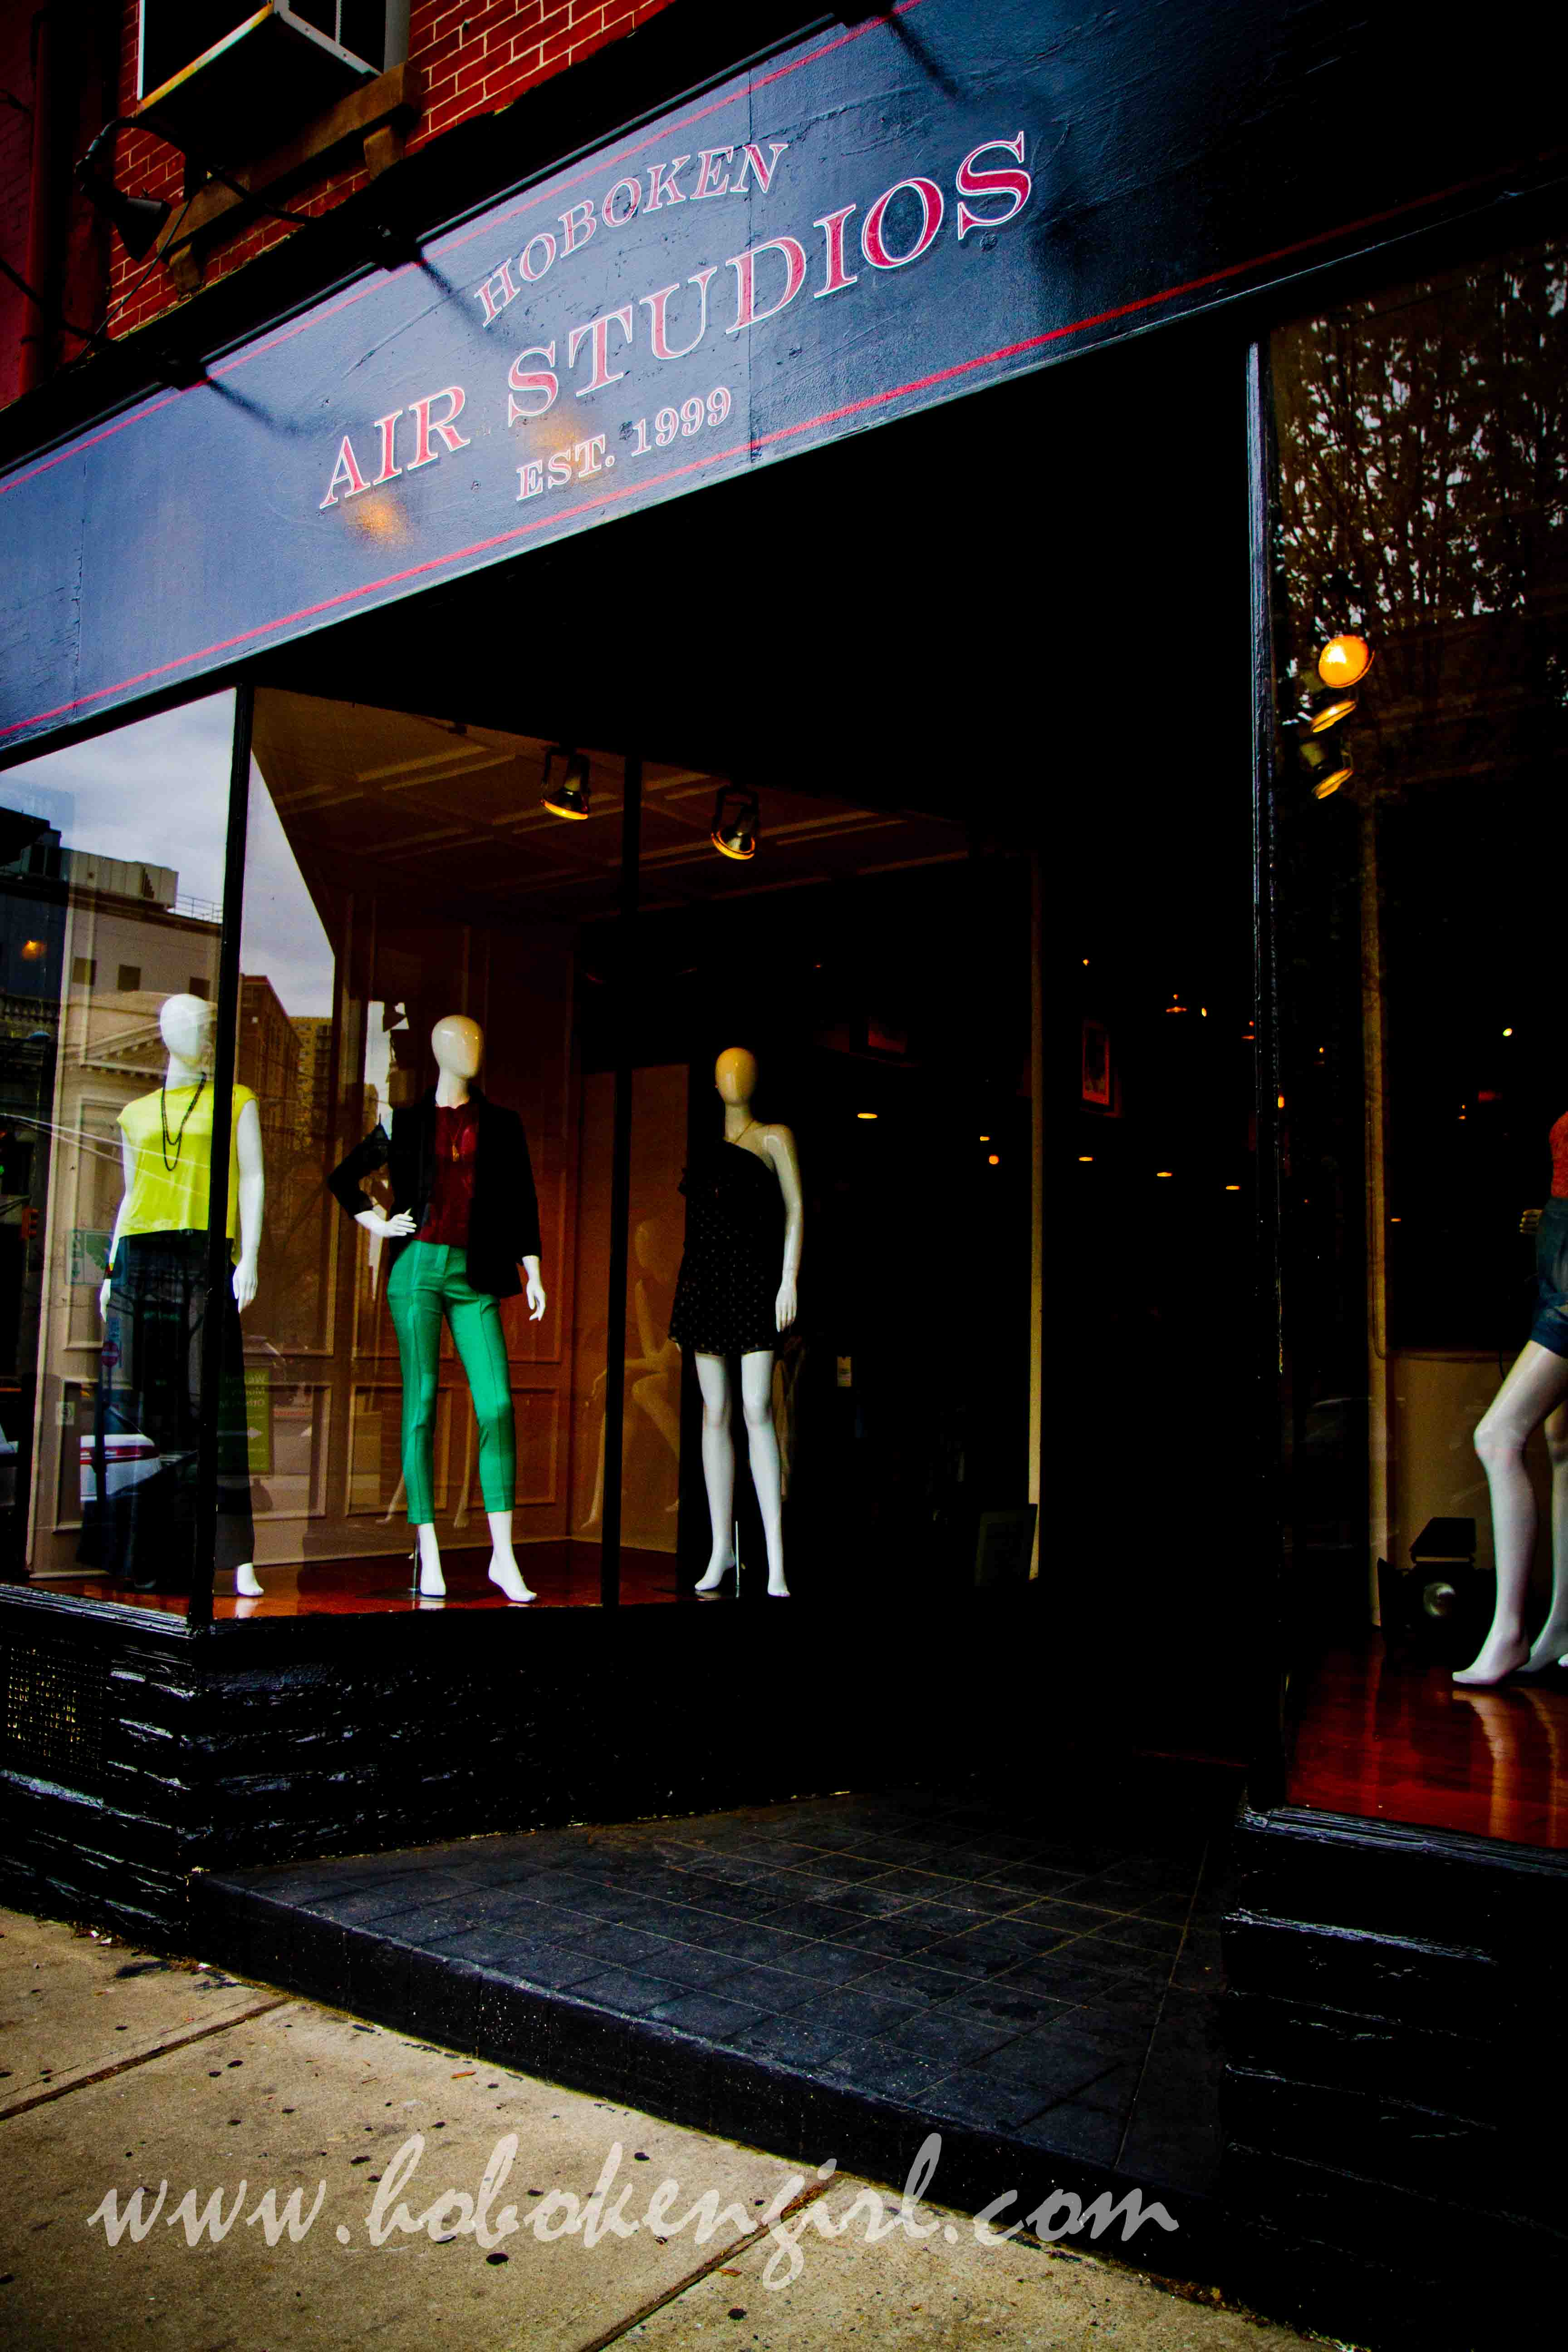 Every Saturday You Have An Open Invitation To Air Studios Boutique At 92 Hudson Street For Some Shopping Mimosas Make Sure Stop By And Say Hello